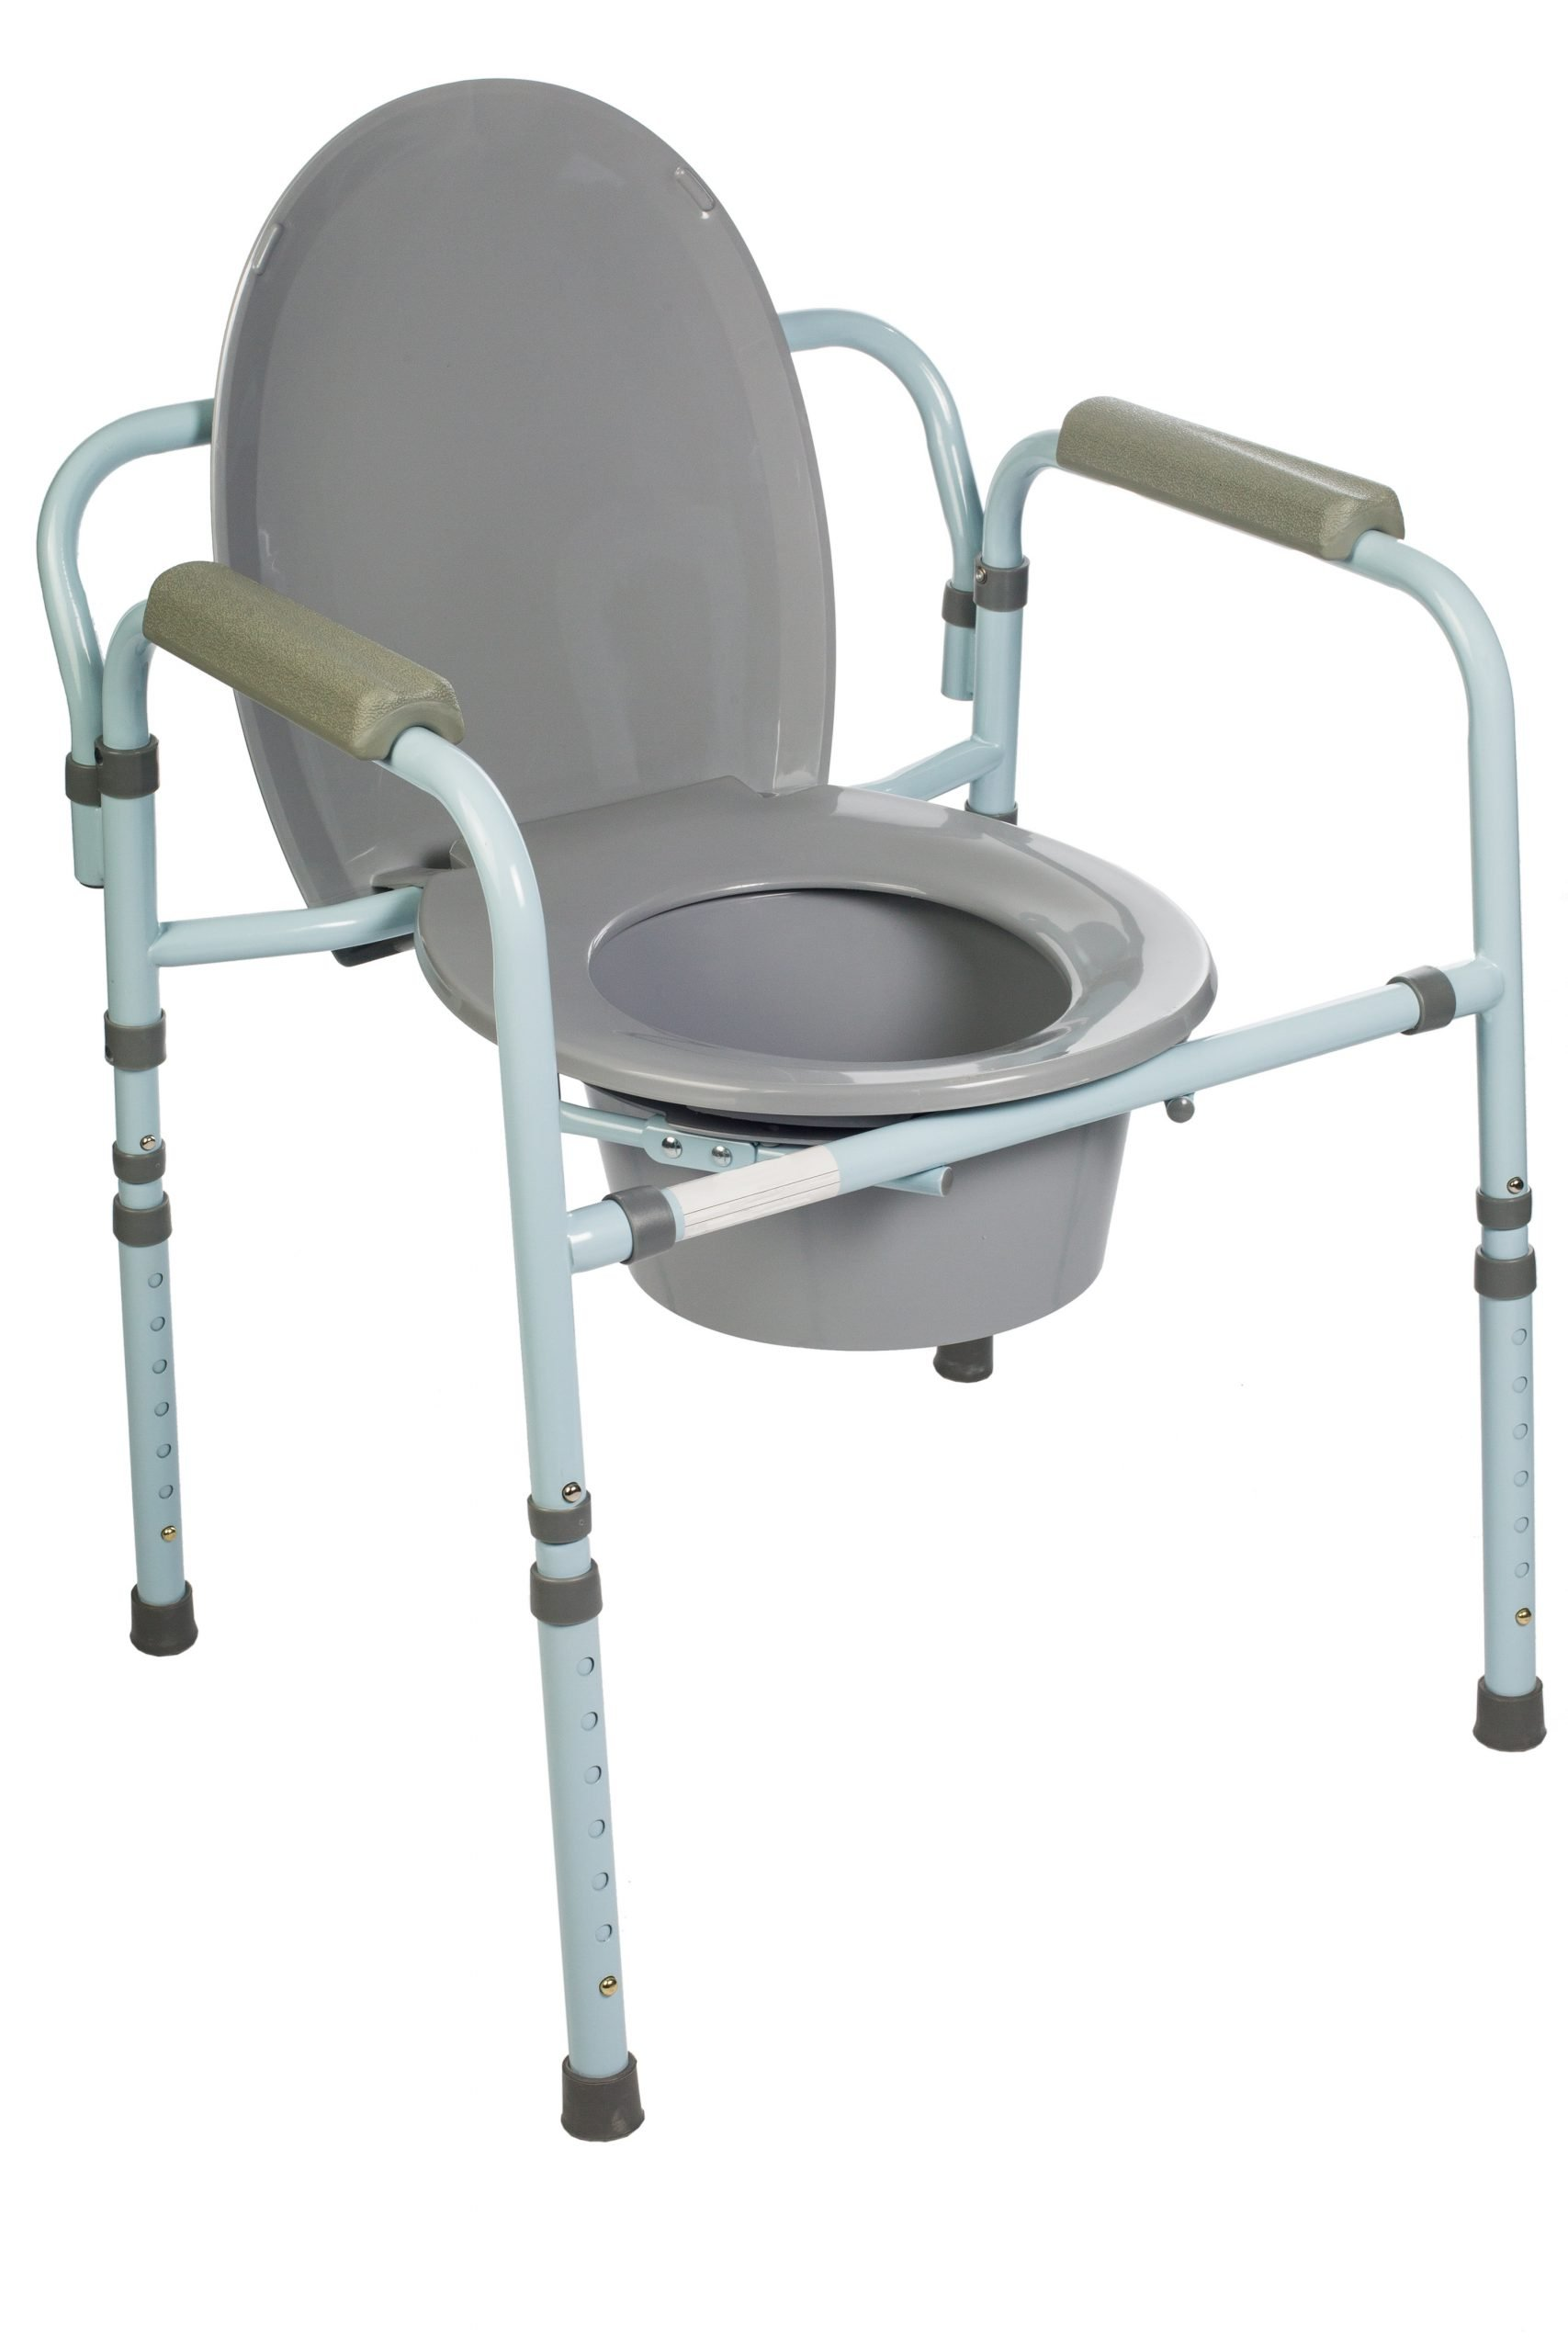 Reliable Commode, Urinal, Bedpan Equipment Delivered to Your Home in MD, PA, DE, NJ & NY